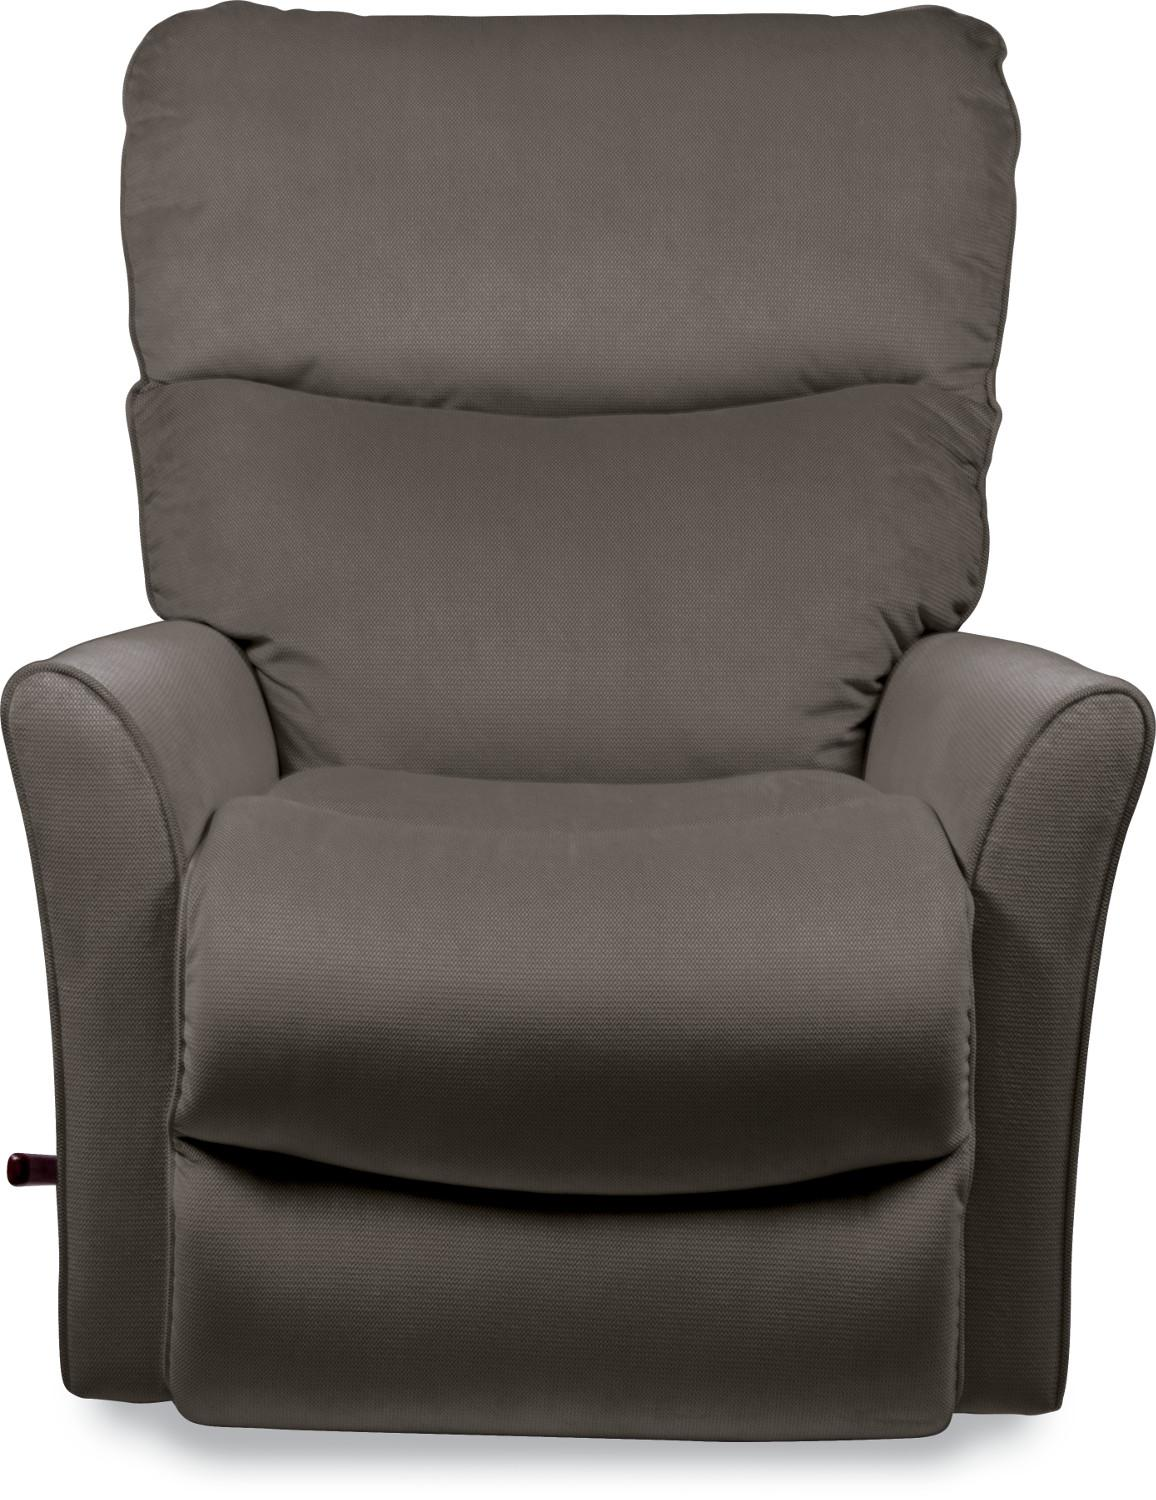 La-Z-Boy ROWAN Rowan Small Scale RECLINA-ROCKER® Recliner with ... d4f2b3a55